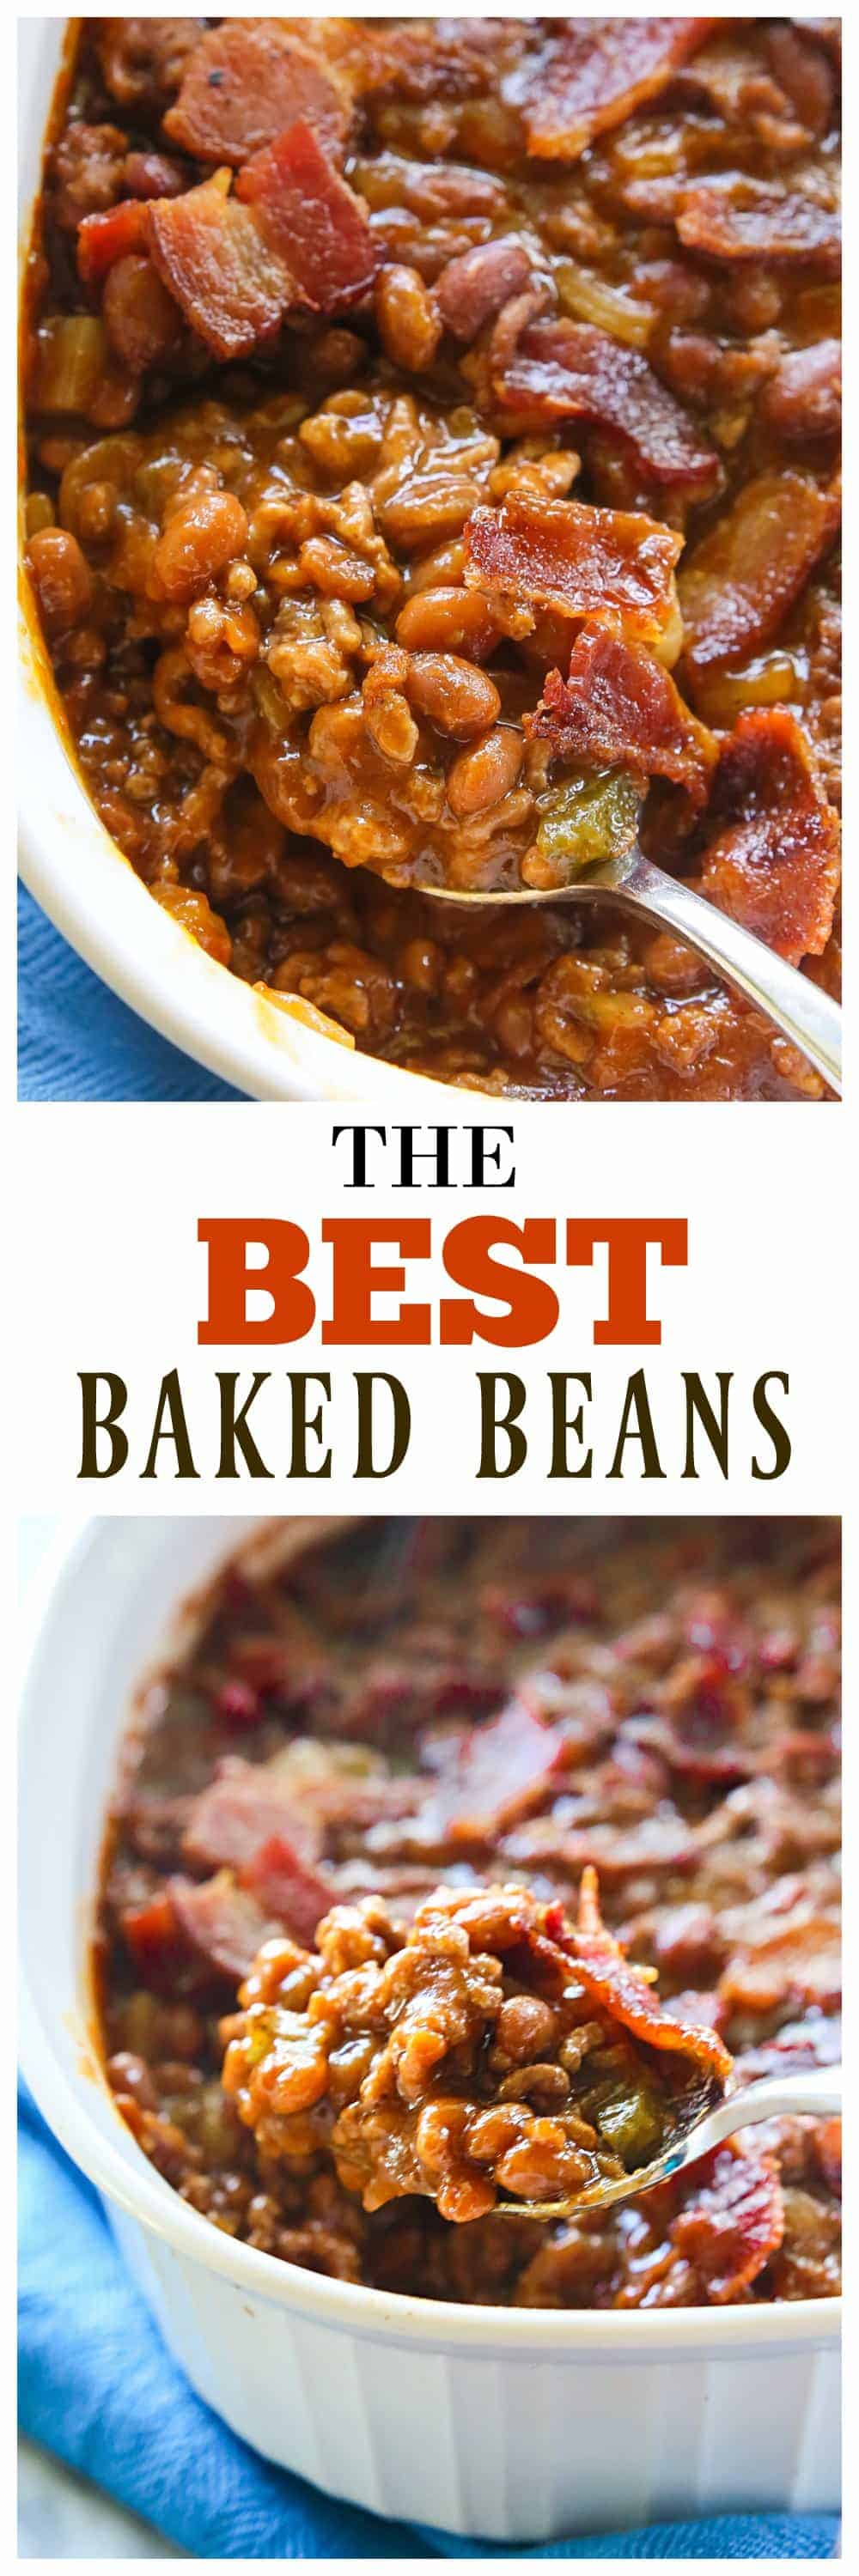 The Best Baked Beans - hearty and thick and always a winner at BBQs, potlucks, and parties. The perfect side dish. #baked #beans #recipe #homemade #BBQ #sidedish